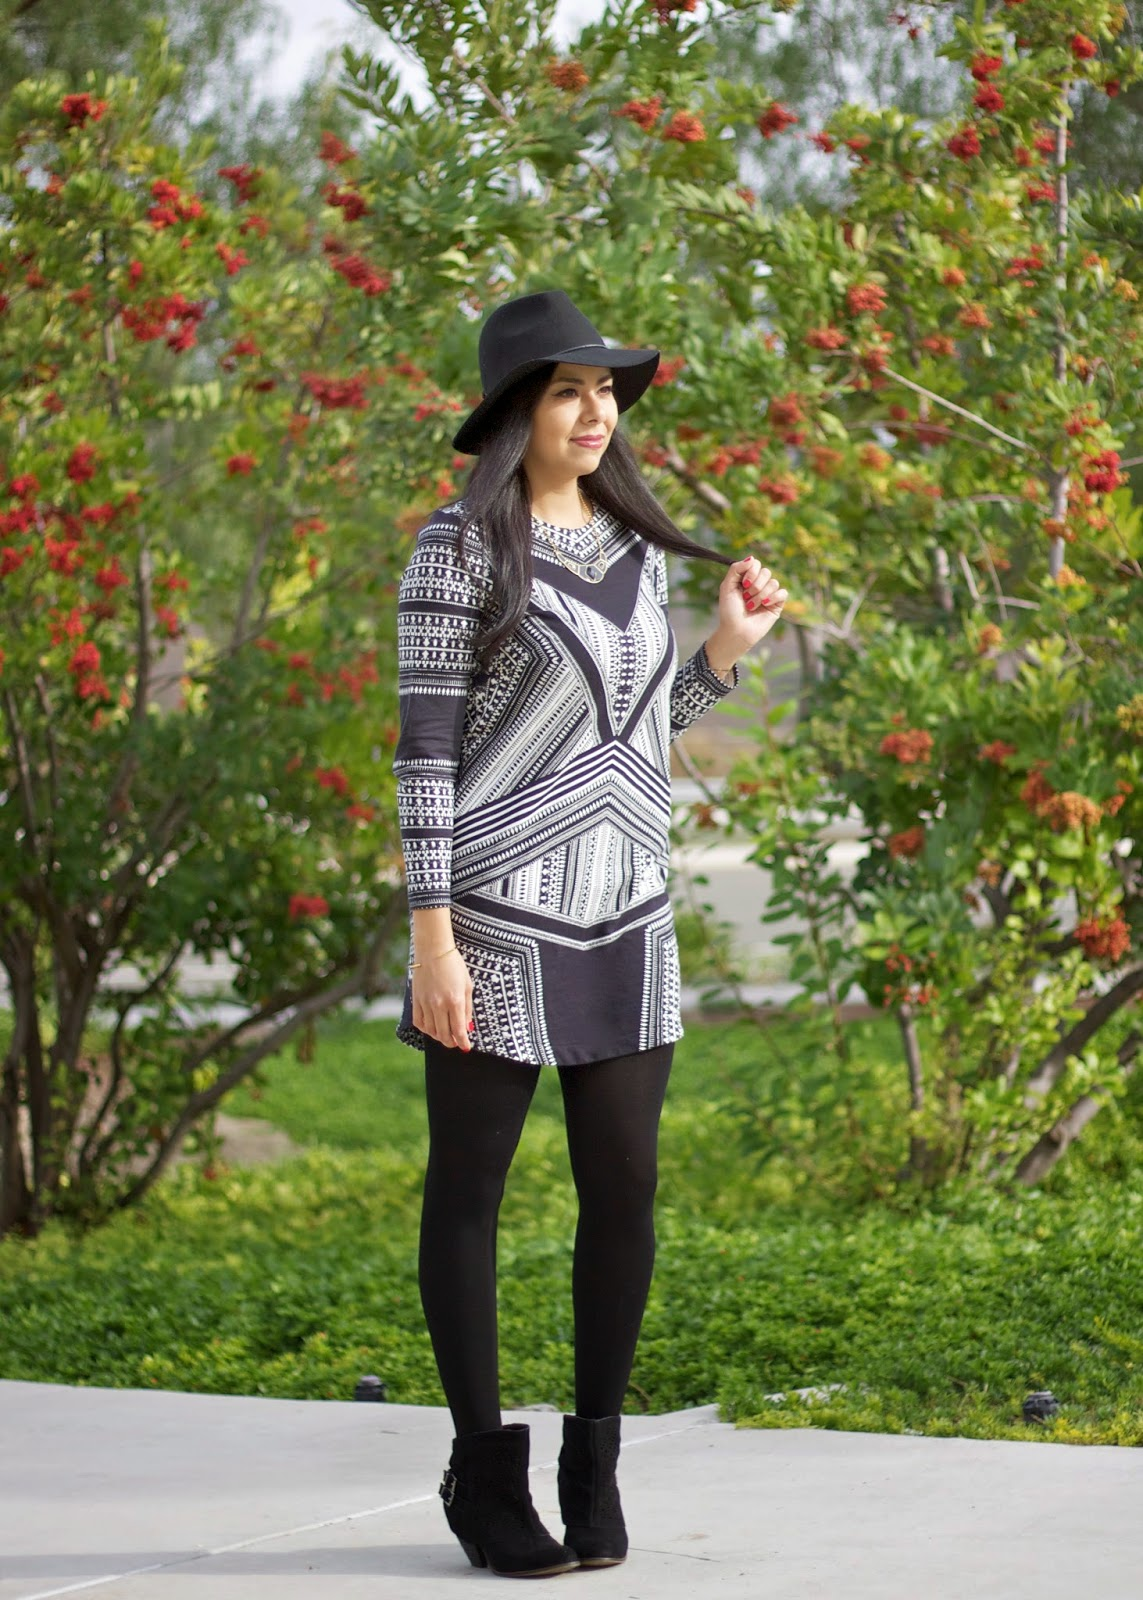 cozy tights for Fall 2014, black and white for Fall 2014, H&M sweater dress, H&M tribal dress, HMUSA sweatshirt dress, san diego fashion blogger, how to wear a knit for Fall, how to wear black in winter, dark lipstick for Fall